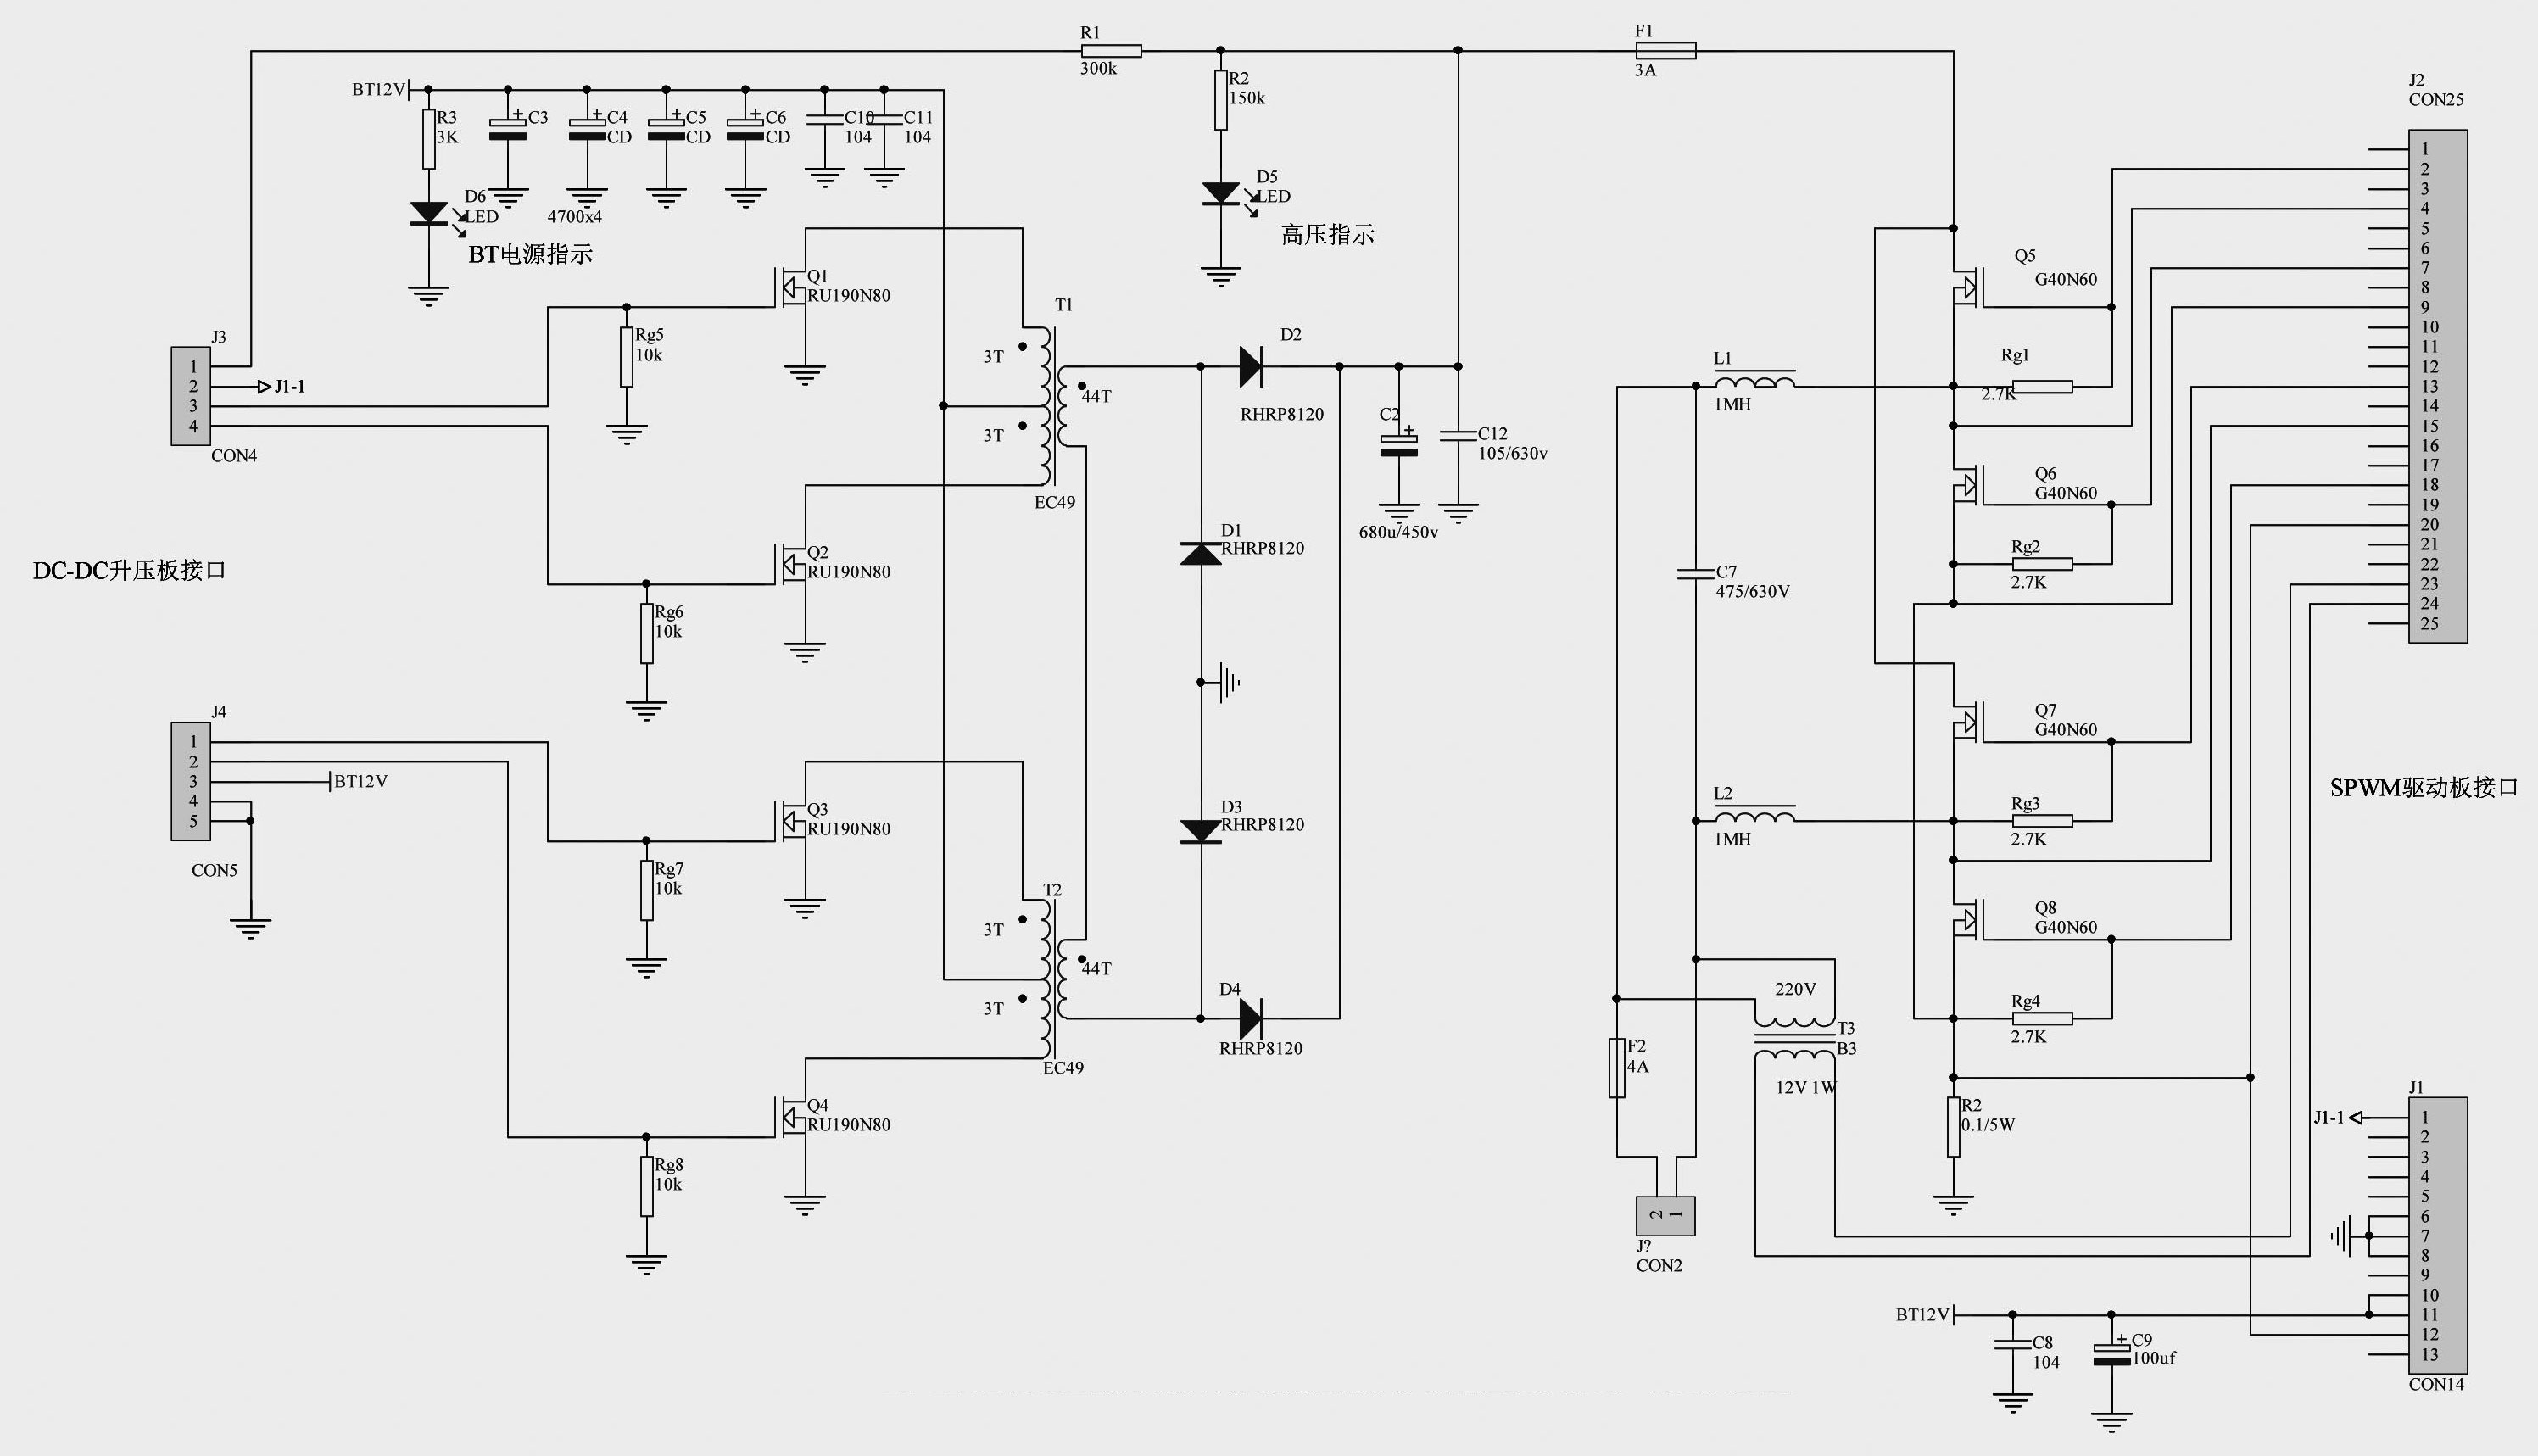 Power Inverter Schematic Diagram Genie Electronique Schema